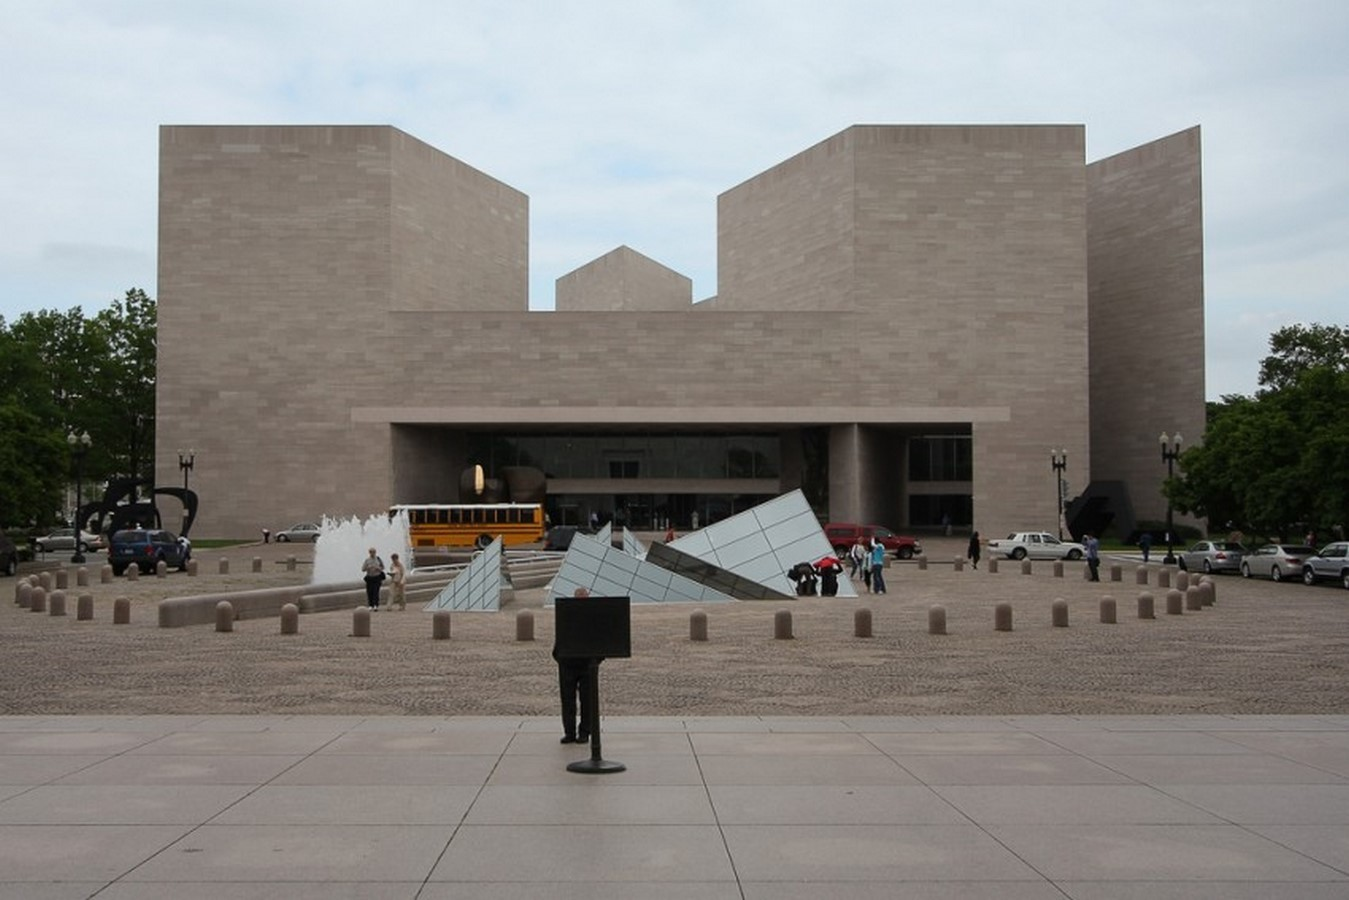 National Gallery of Art, East Building by I.M.Pei- A symbol of American democracy - Sheet1